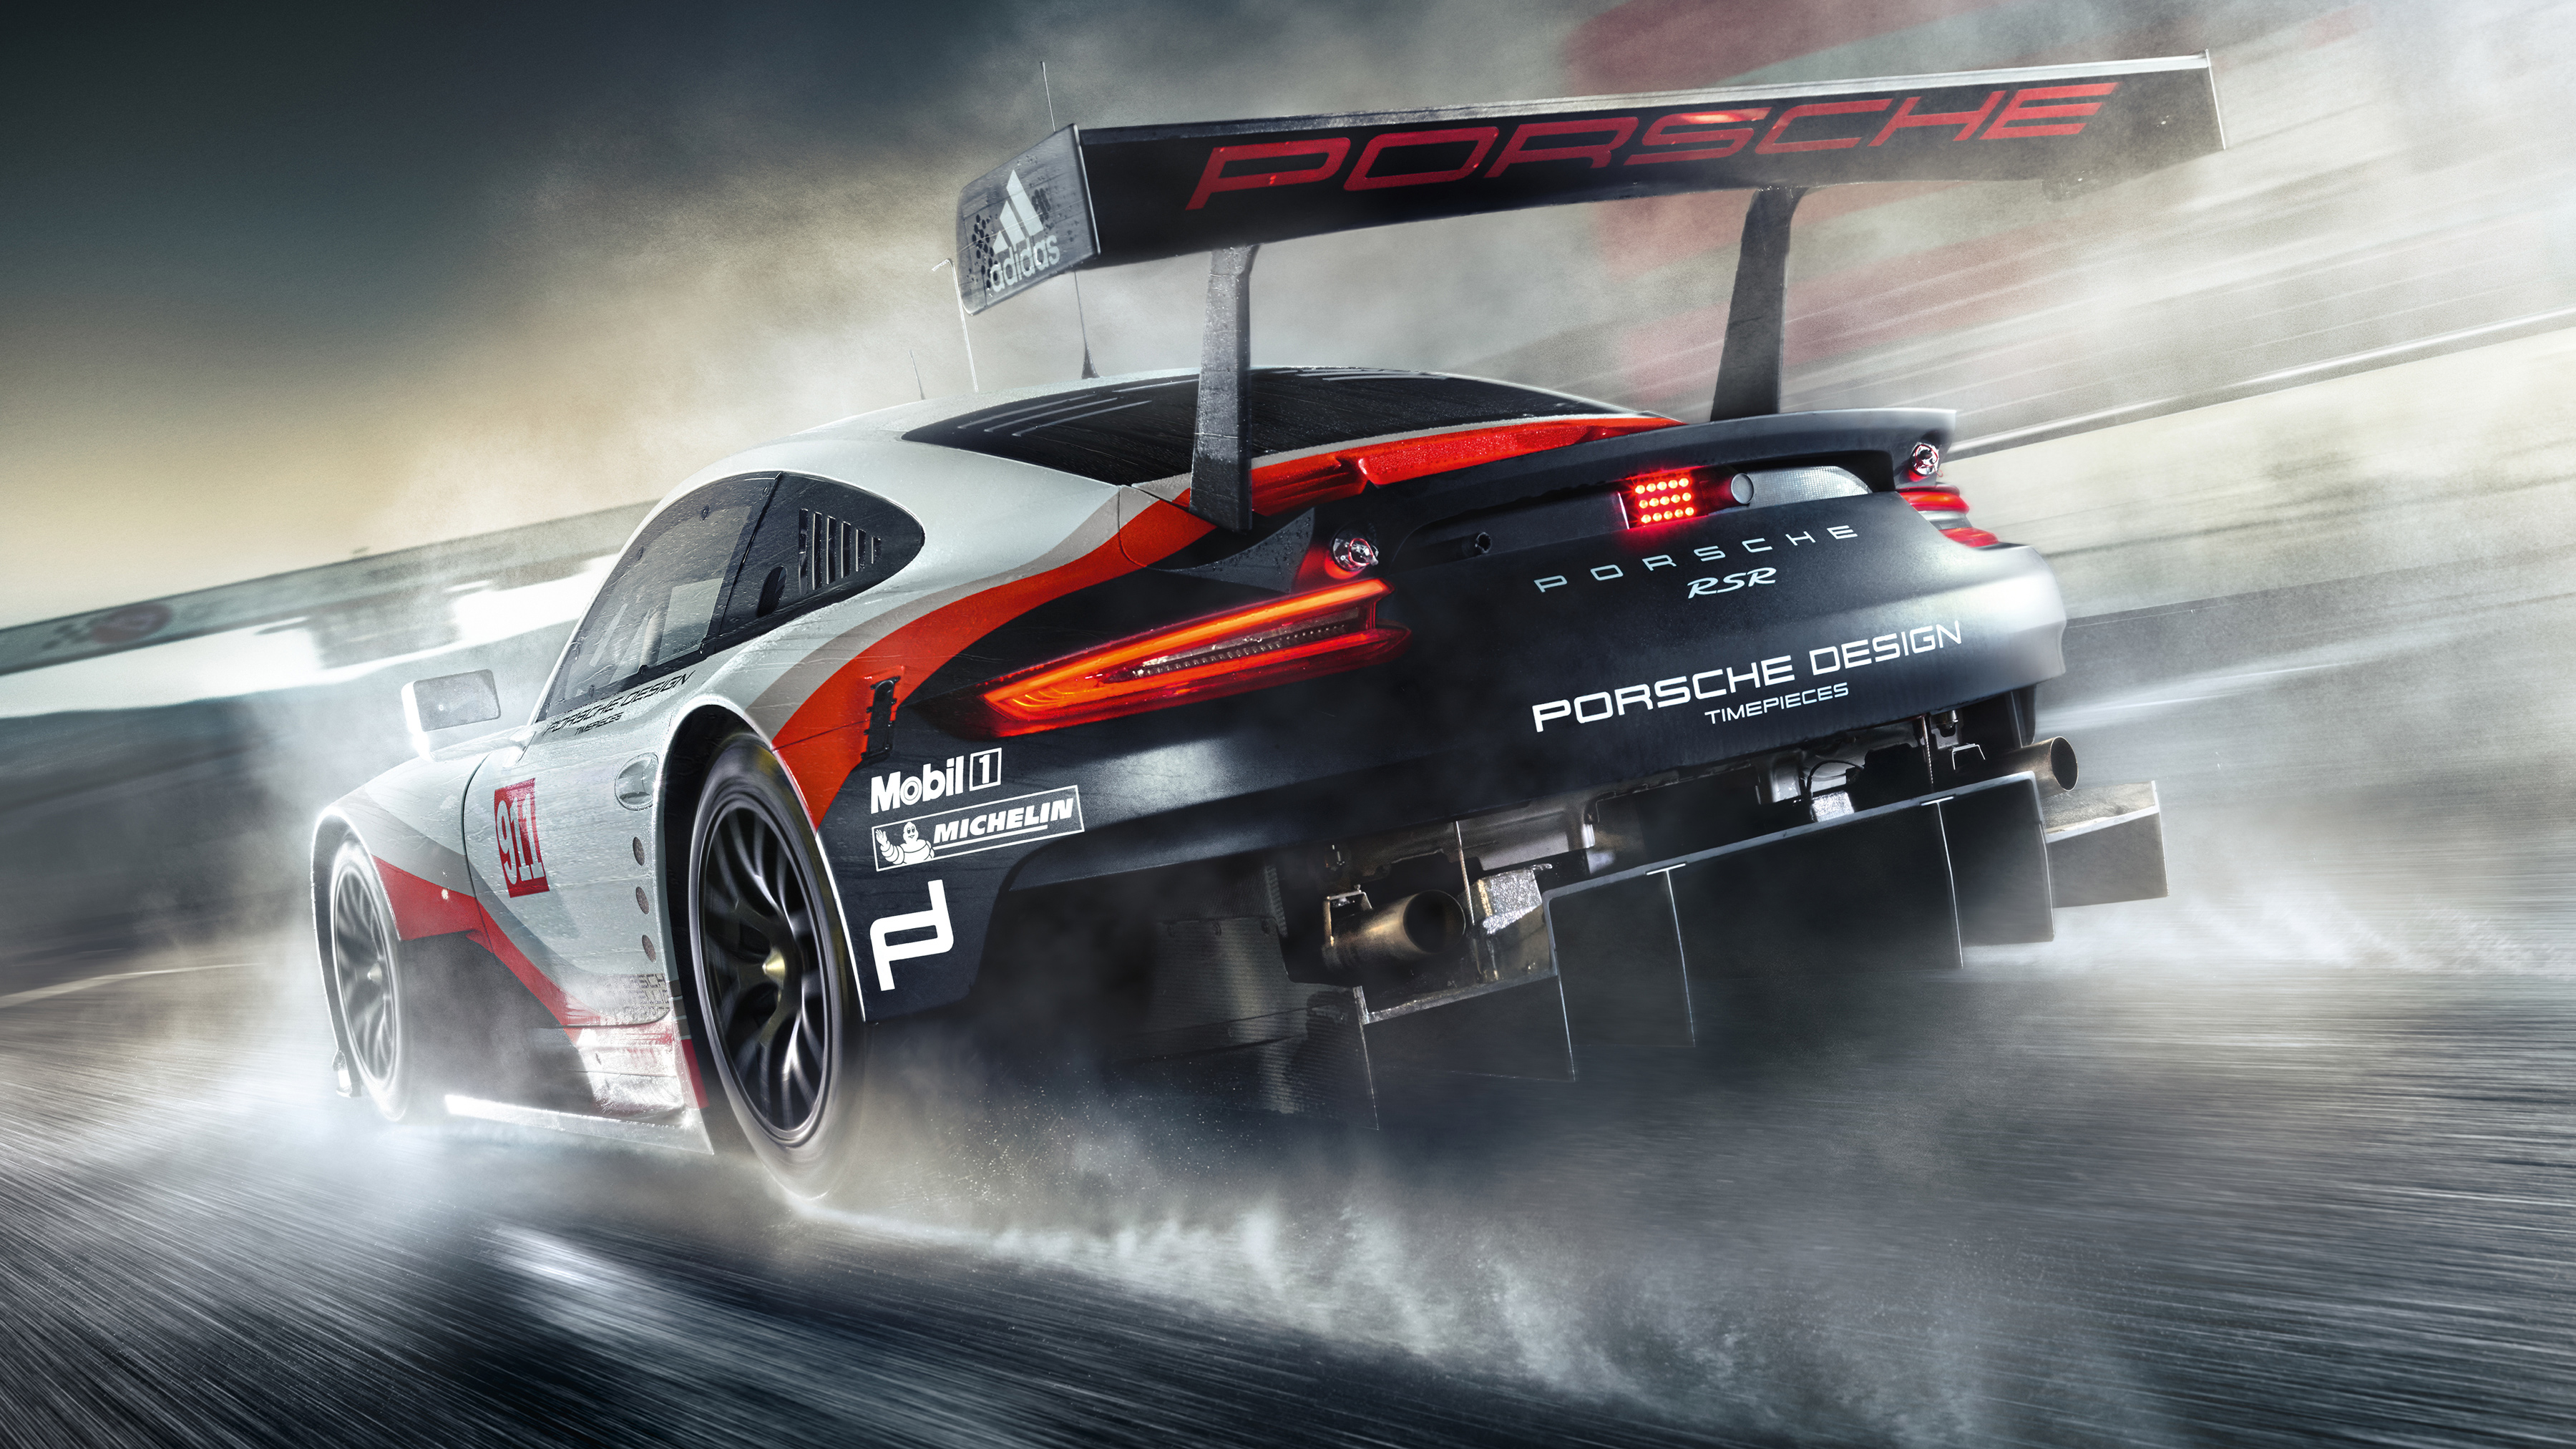 Porsche 911 RSR Porsche Design 4K Wallpaper